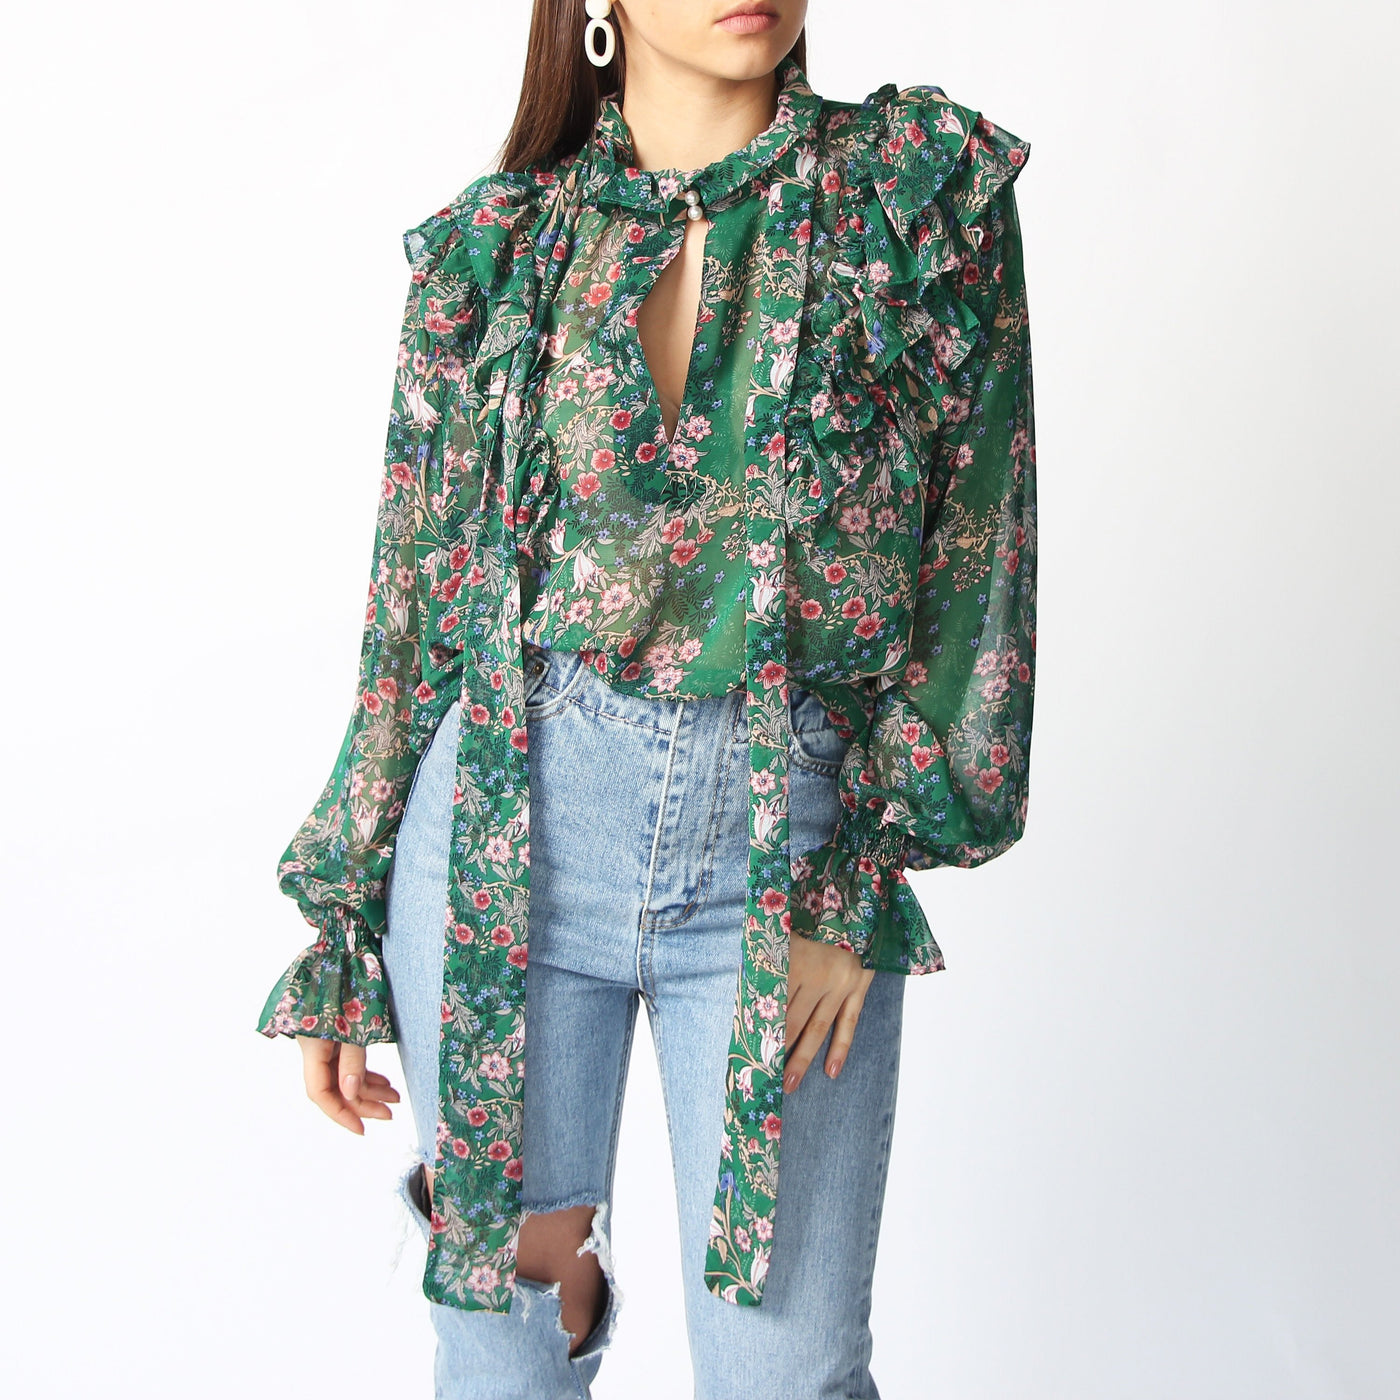 Green Floral Ruffle Blouse - Marble Hive